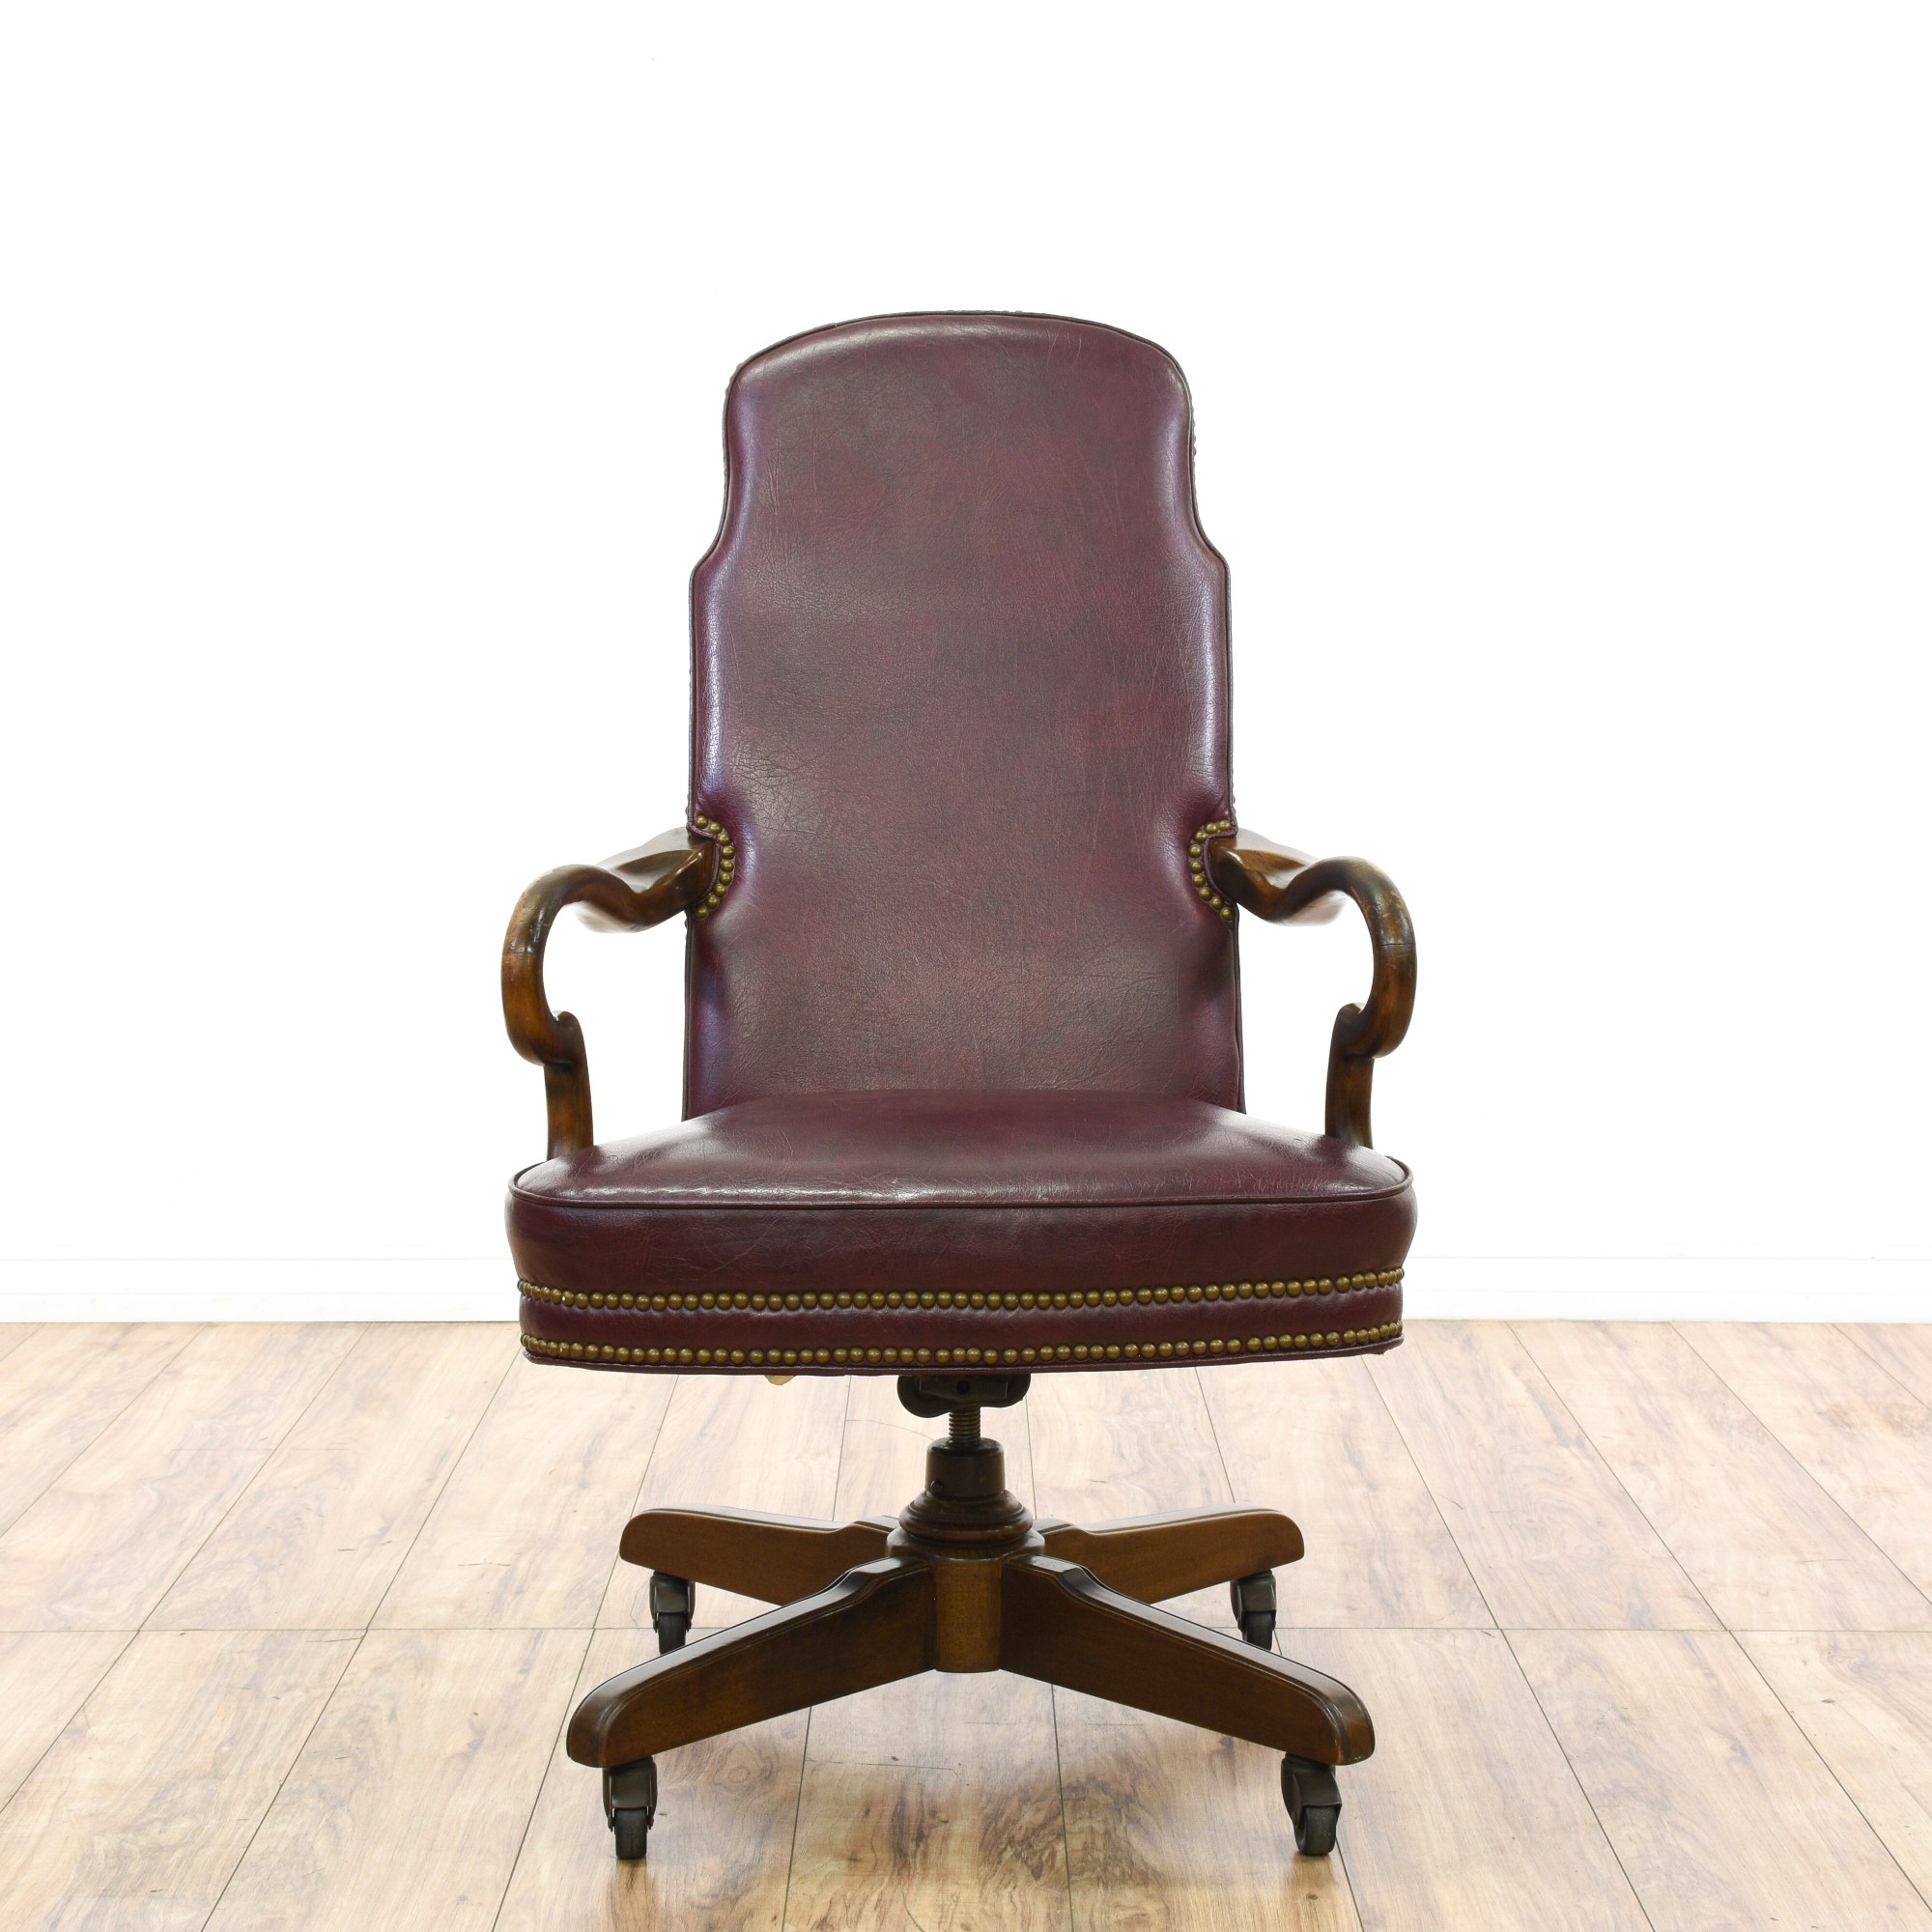 Red Leather Office Chair Quotethan Allen Quot Wine Red Leather Office Chair Loveseat